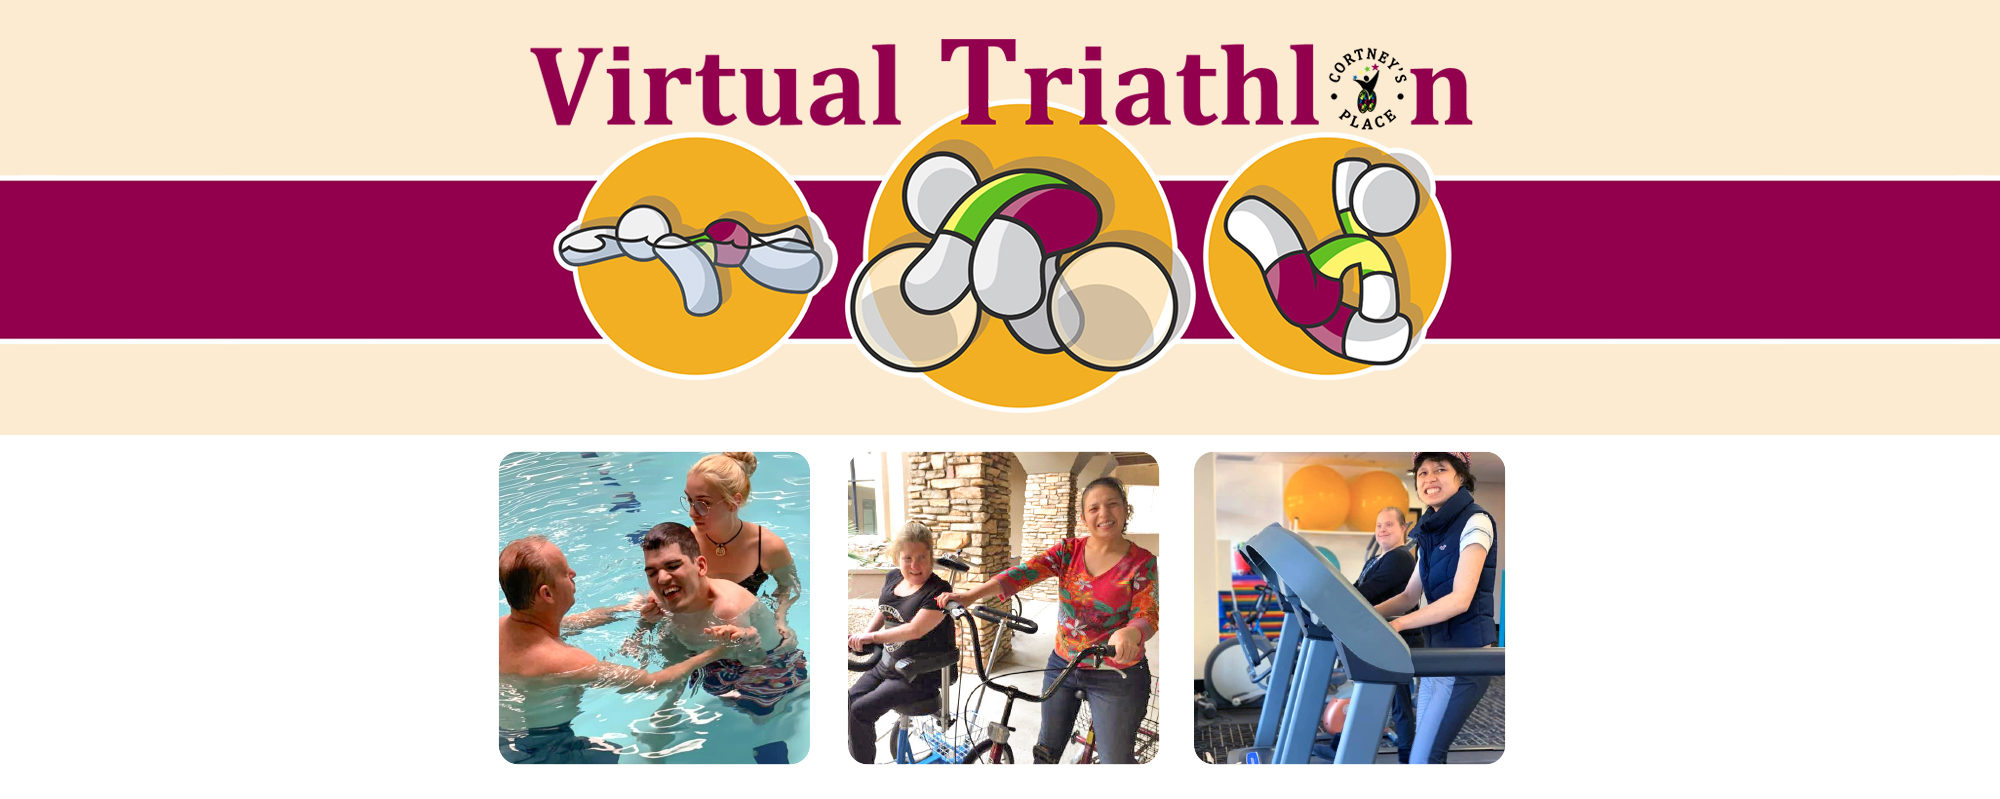 Virtual Triathlon programs for disabled adults